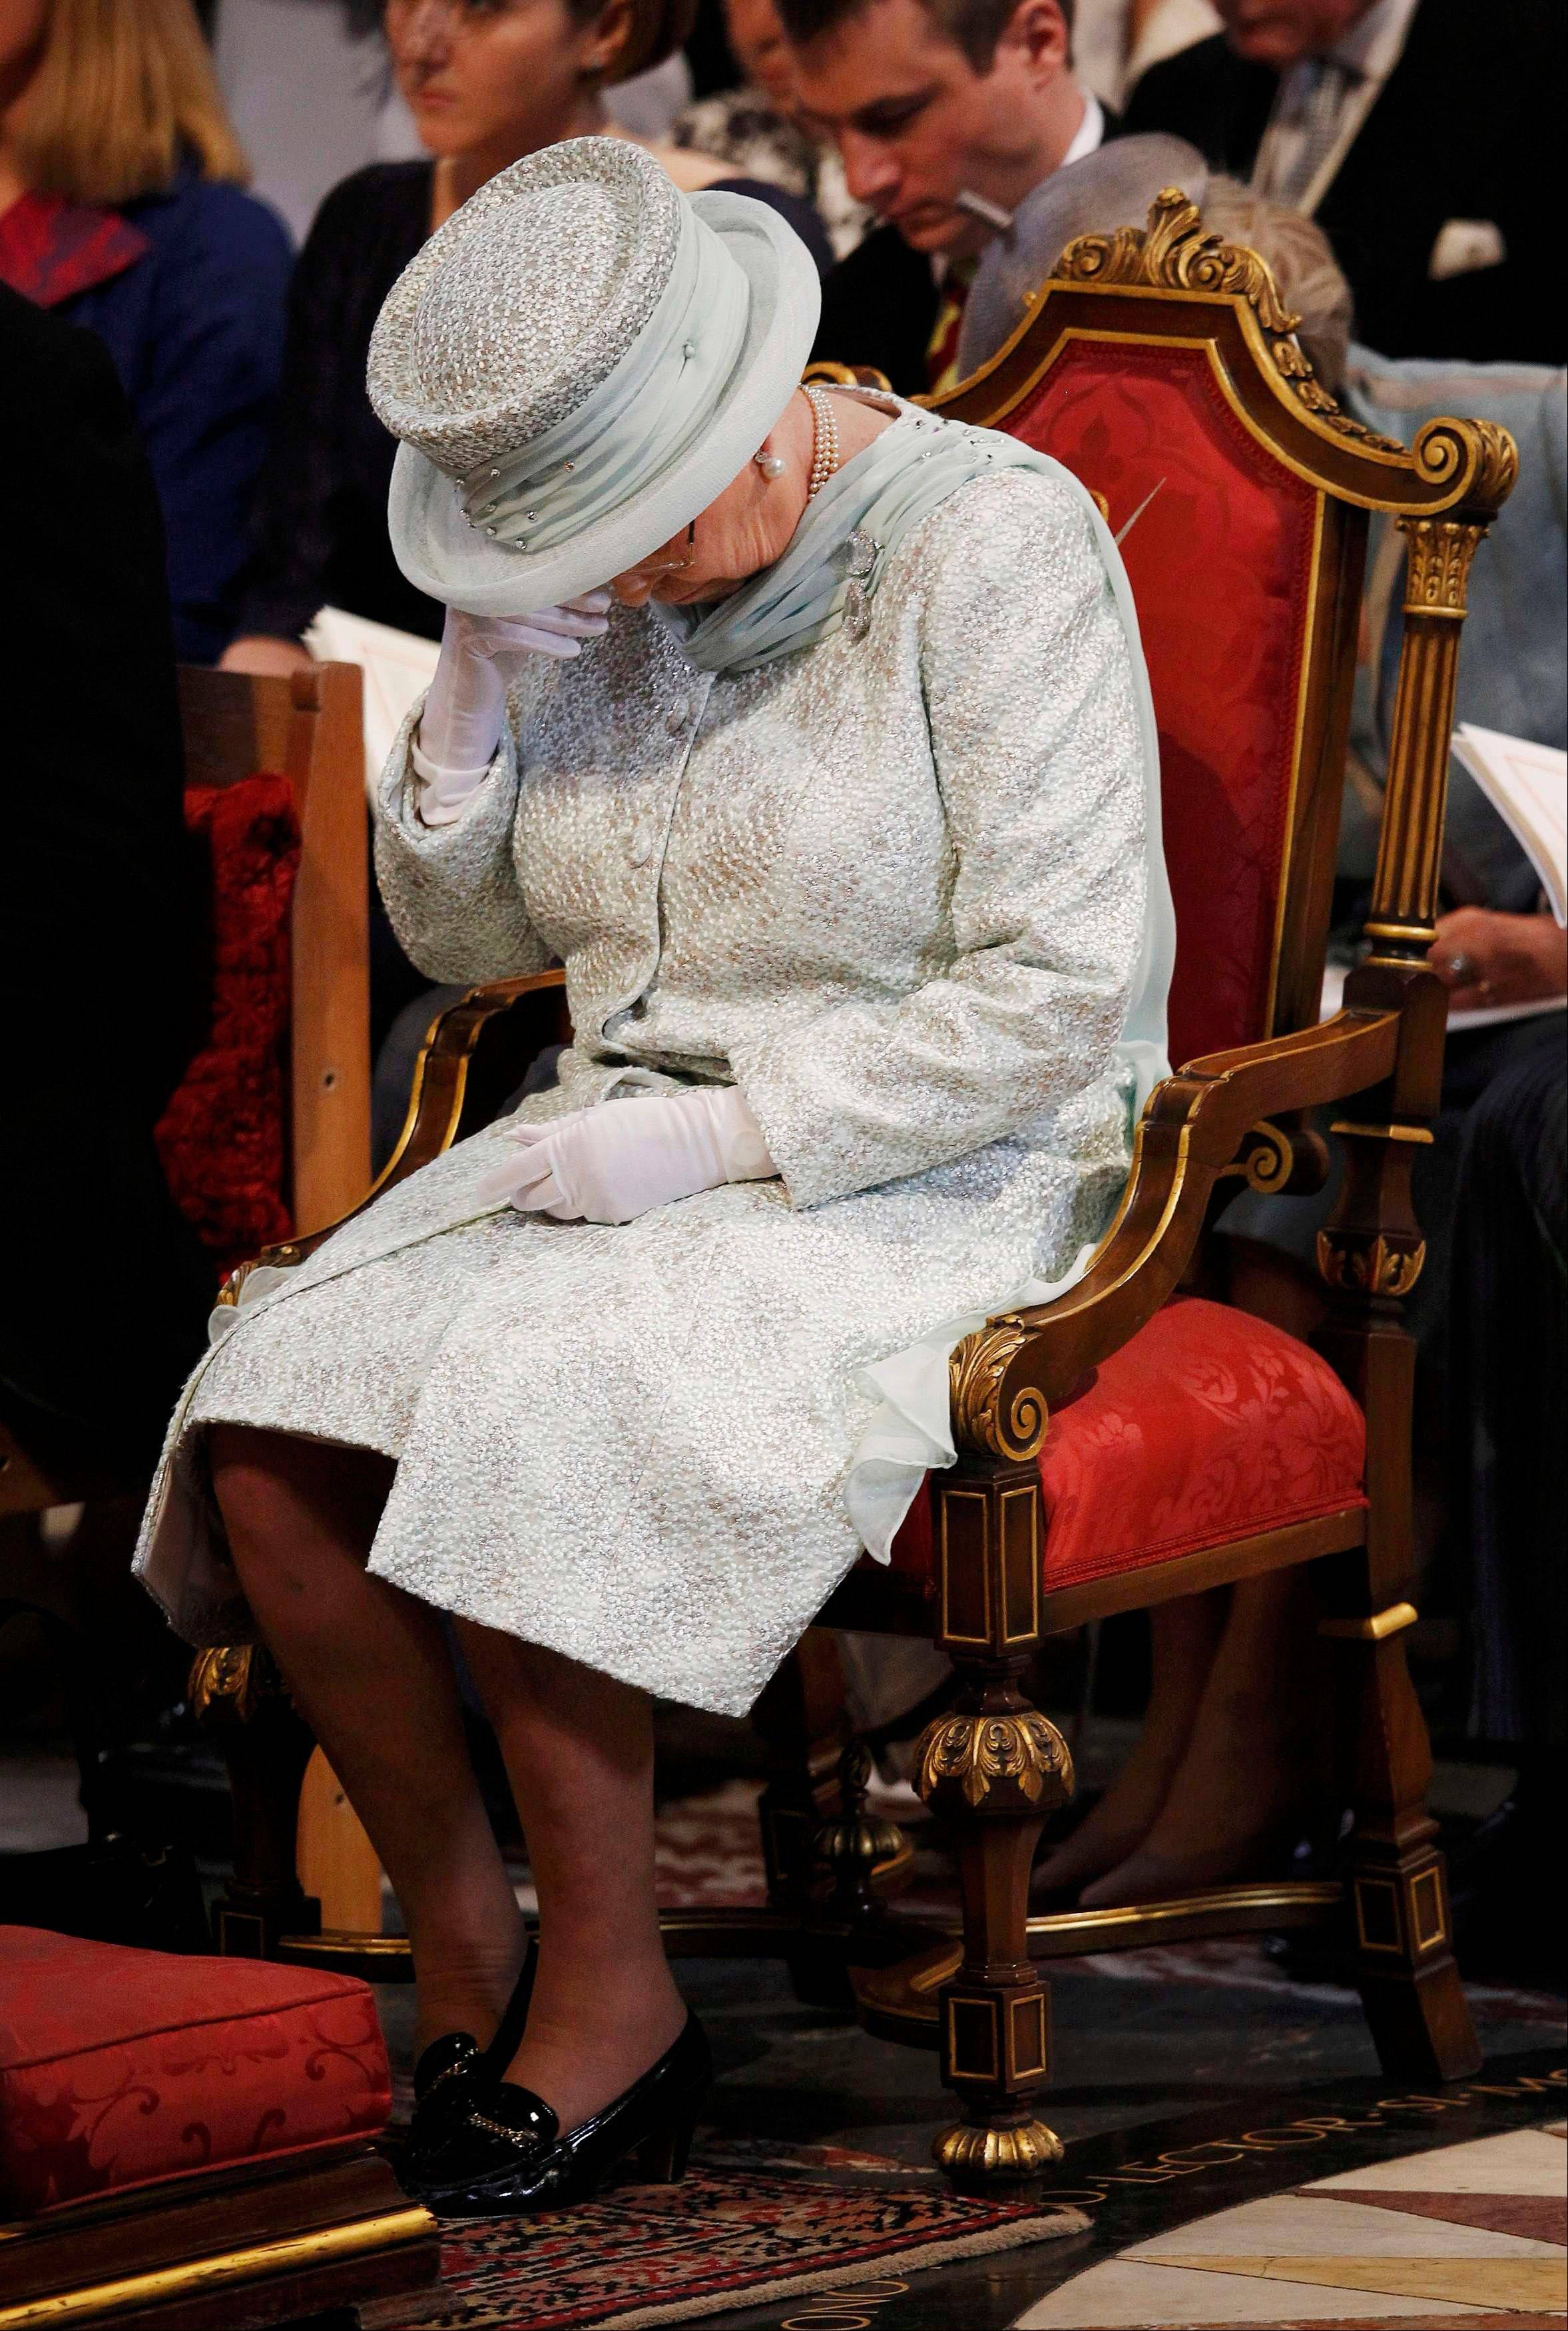 Britain's Queen Elizabeth II wipes her eye during a thanksgiving service to celebrate her Diamond Jubilee at St Paul's Cathedral in central London Tuesday June 5, 2012. Four days of nationwide celebrations during which millions of people have turned out to mark Queen Elizabeth's Diamond Jubilee conclude on Tuesday with a church service and carriage procession through central London.